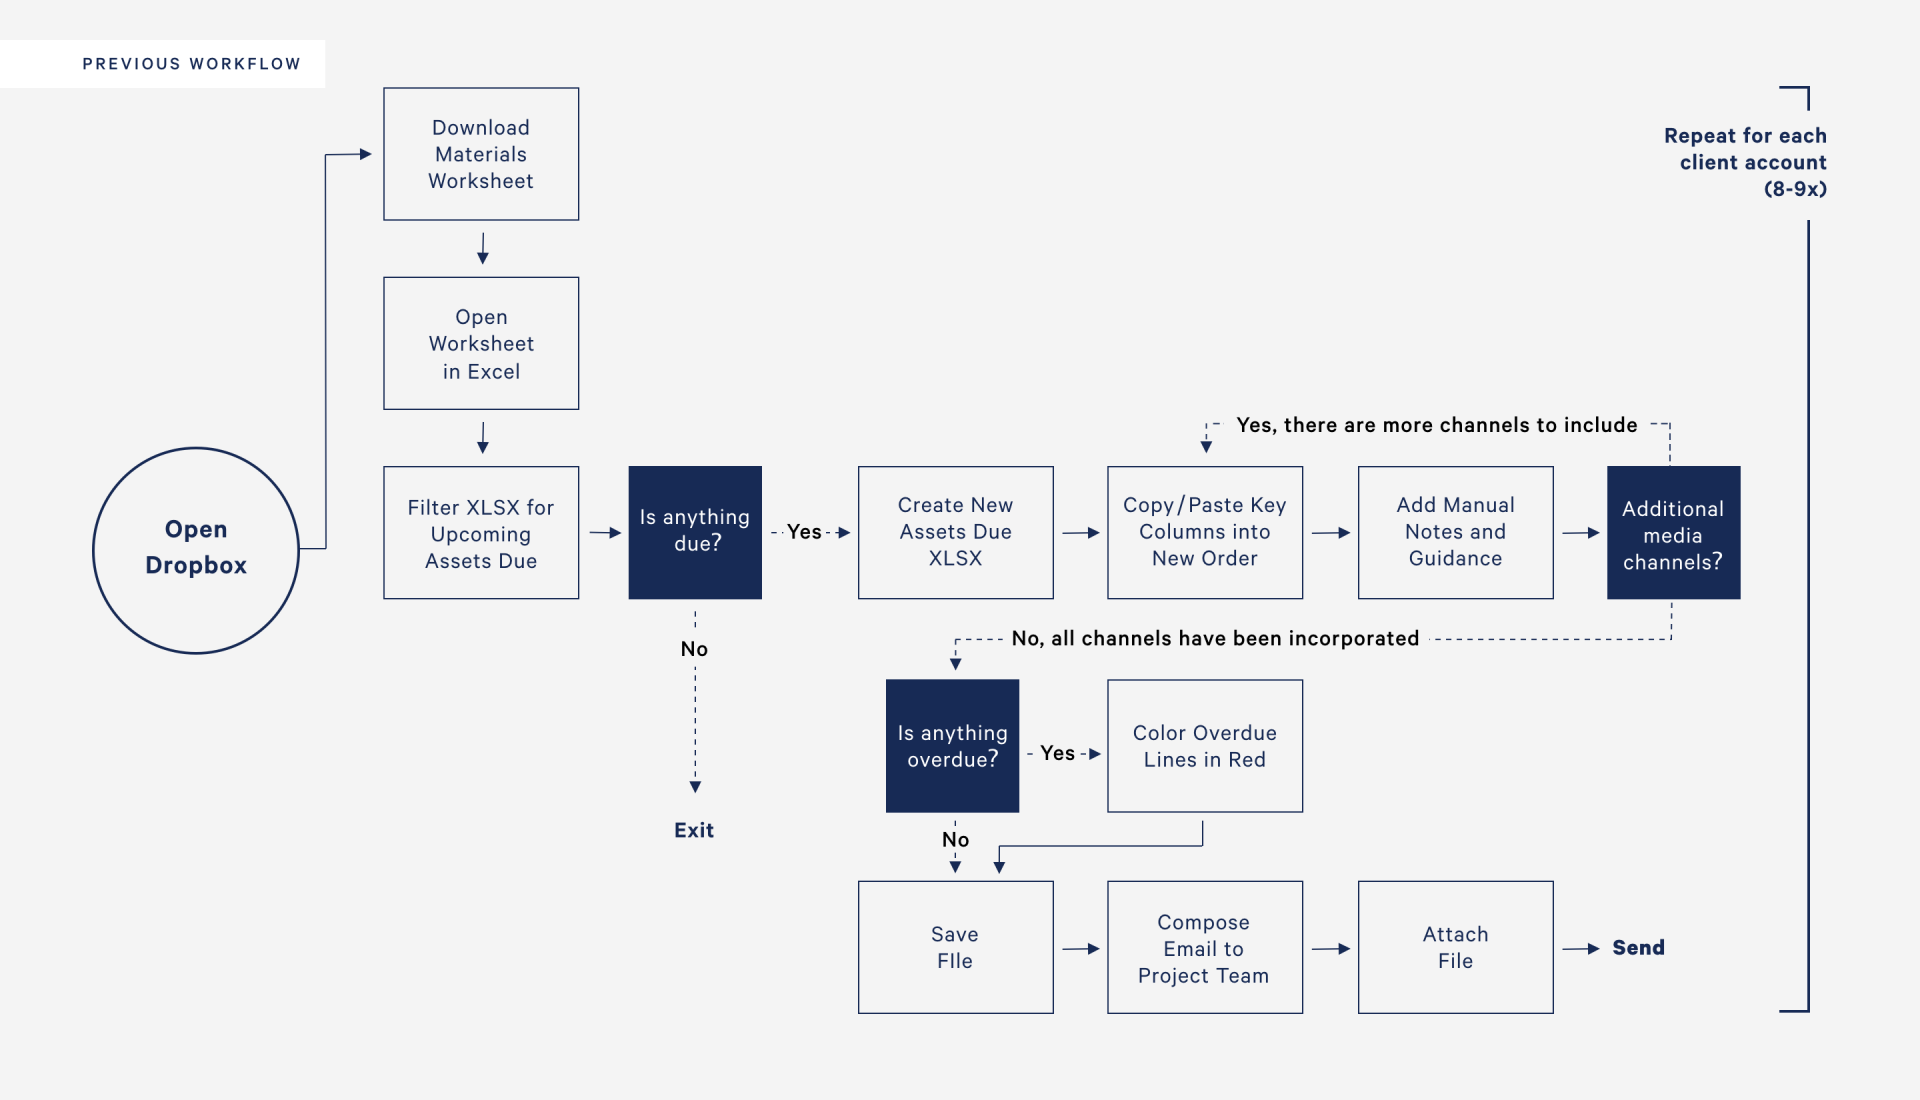 RPA workflow showing previous steps.